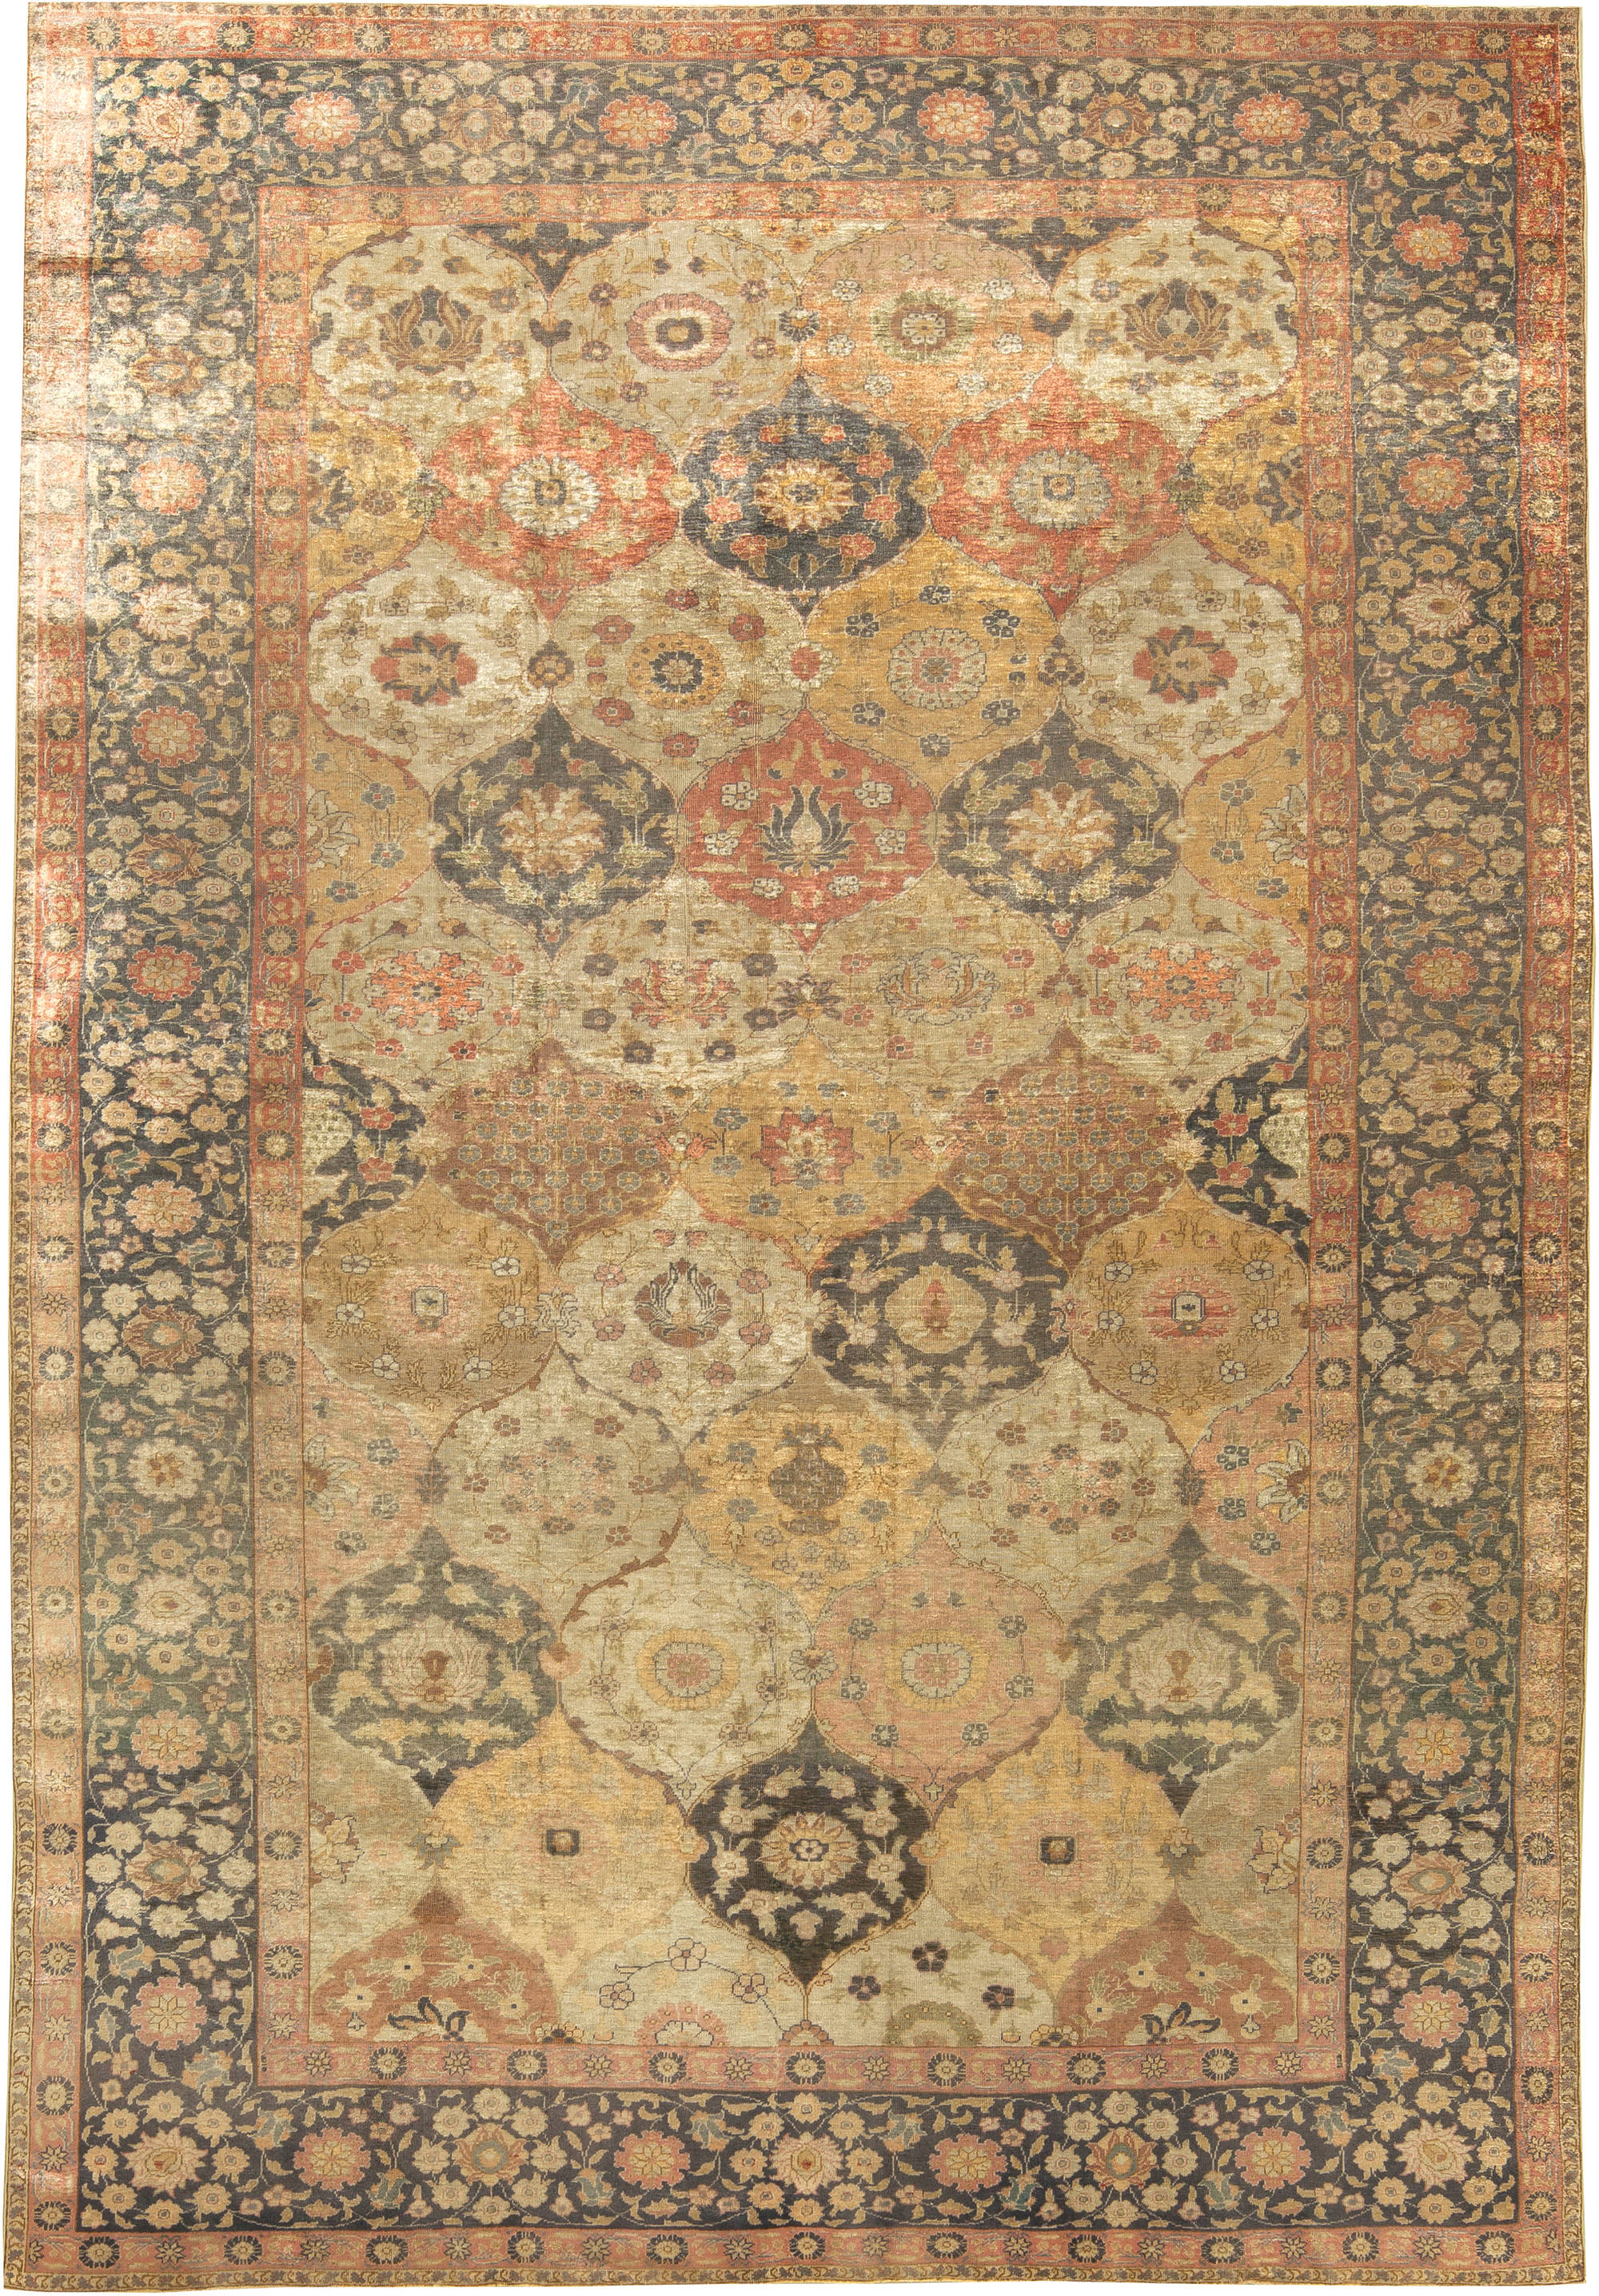 Hereke Rugs Large Area Carpets For Sale Istanbul